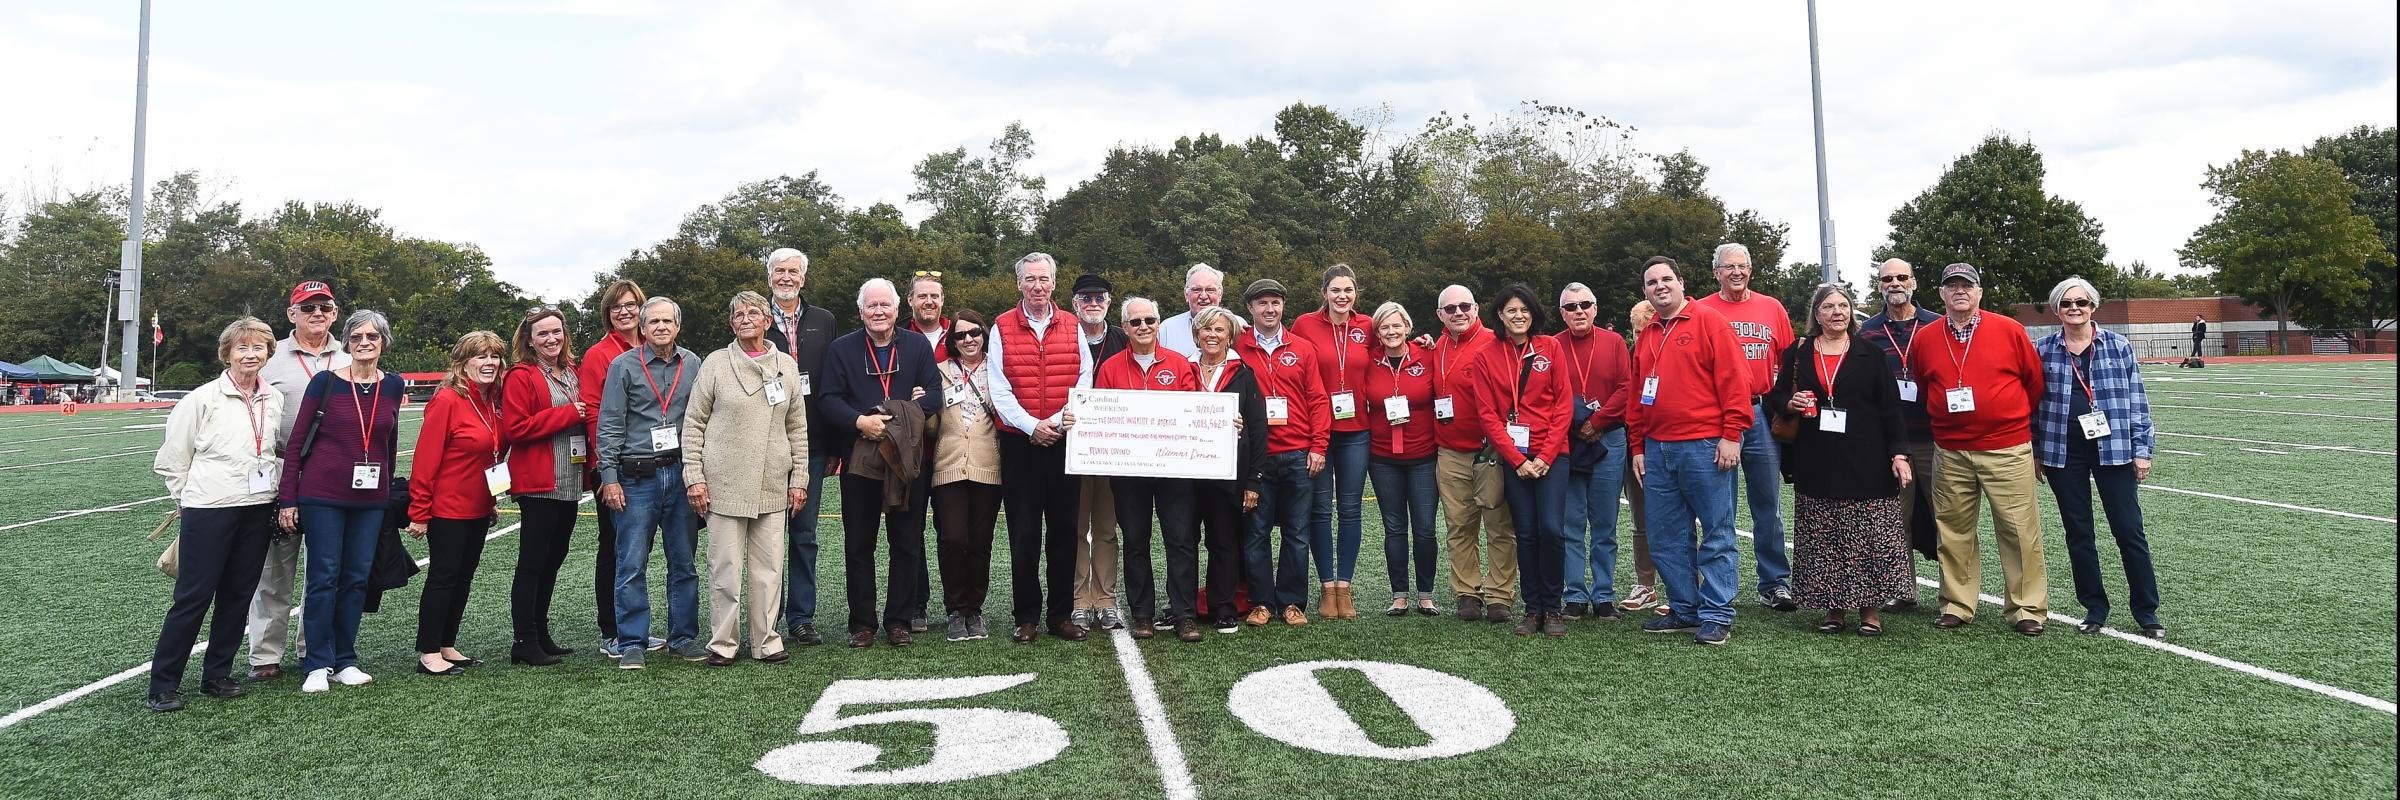 Reunion alumni holding a large check on a football field